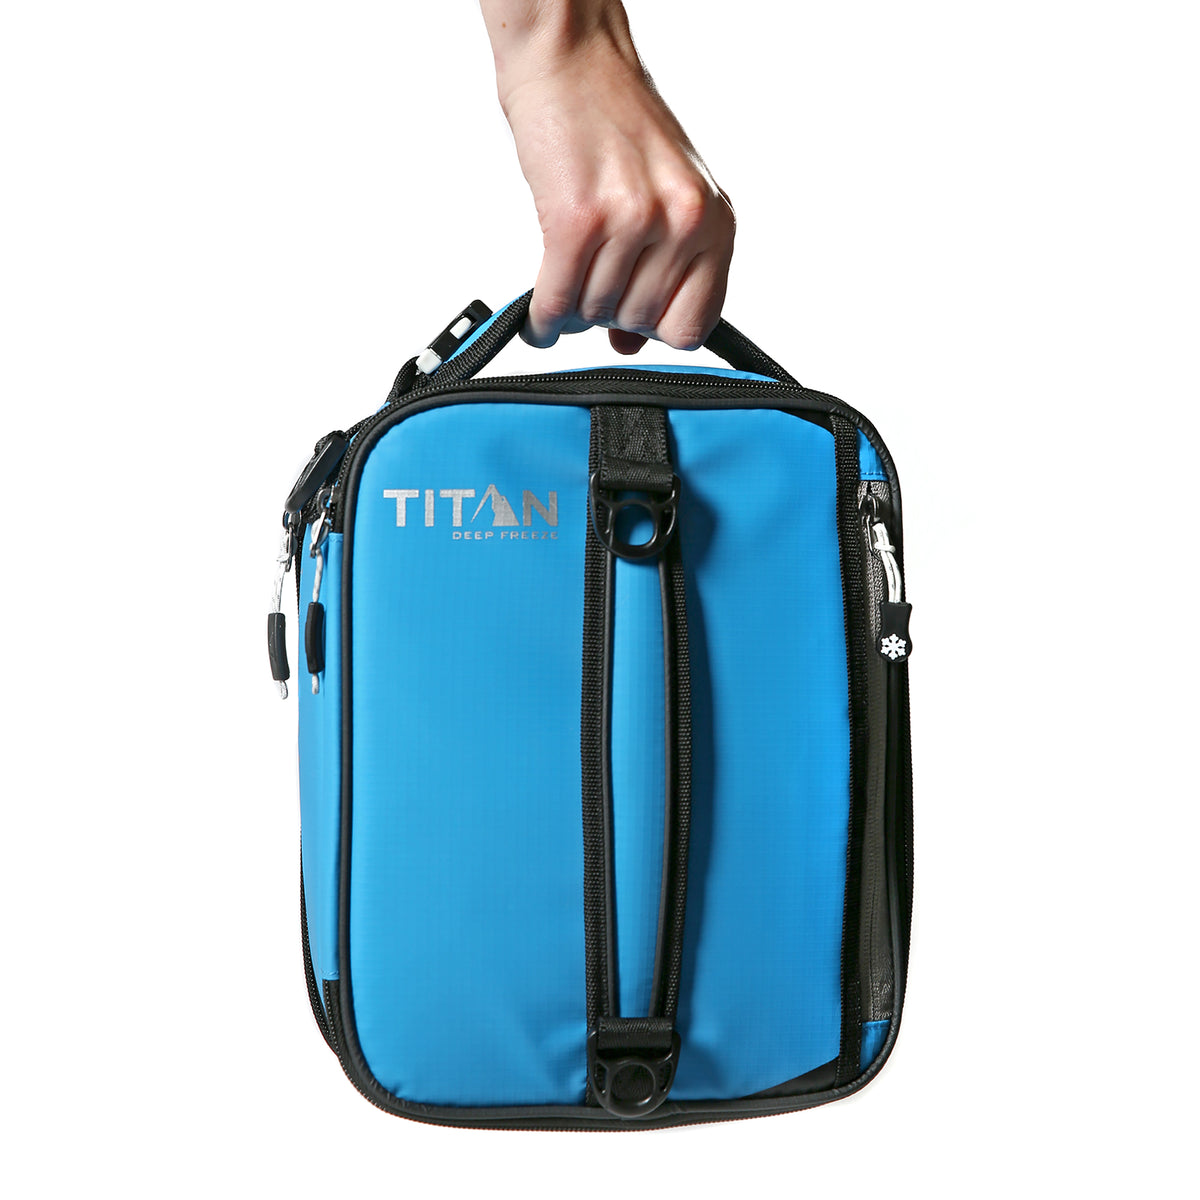 Titan Deep Freeze® Expandable Lunch Box - Blue - Carry, vertical